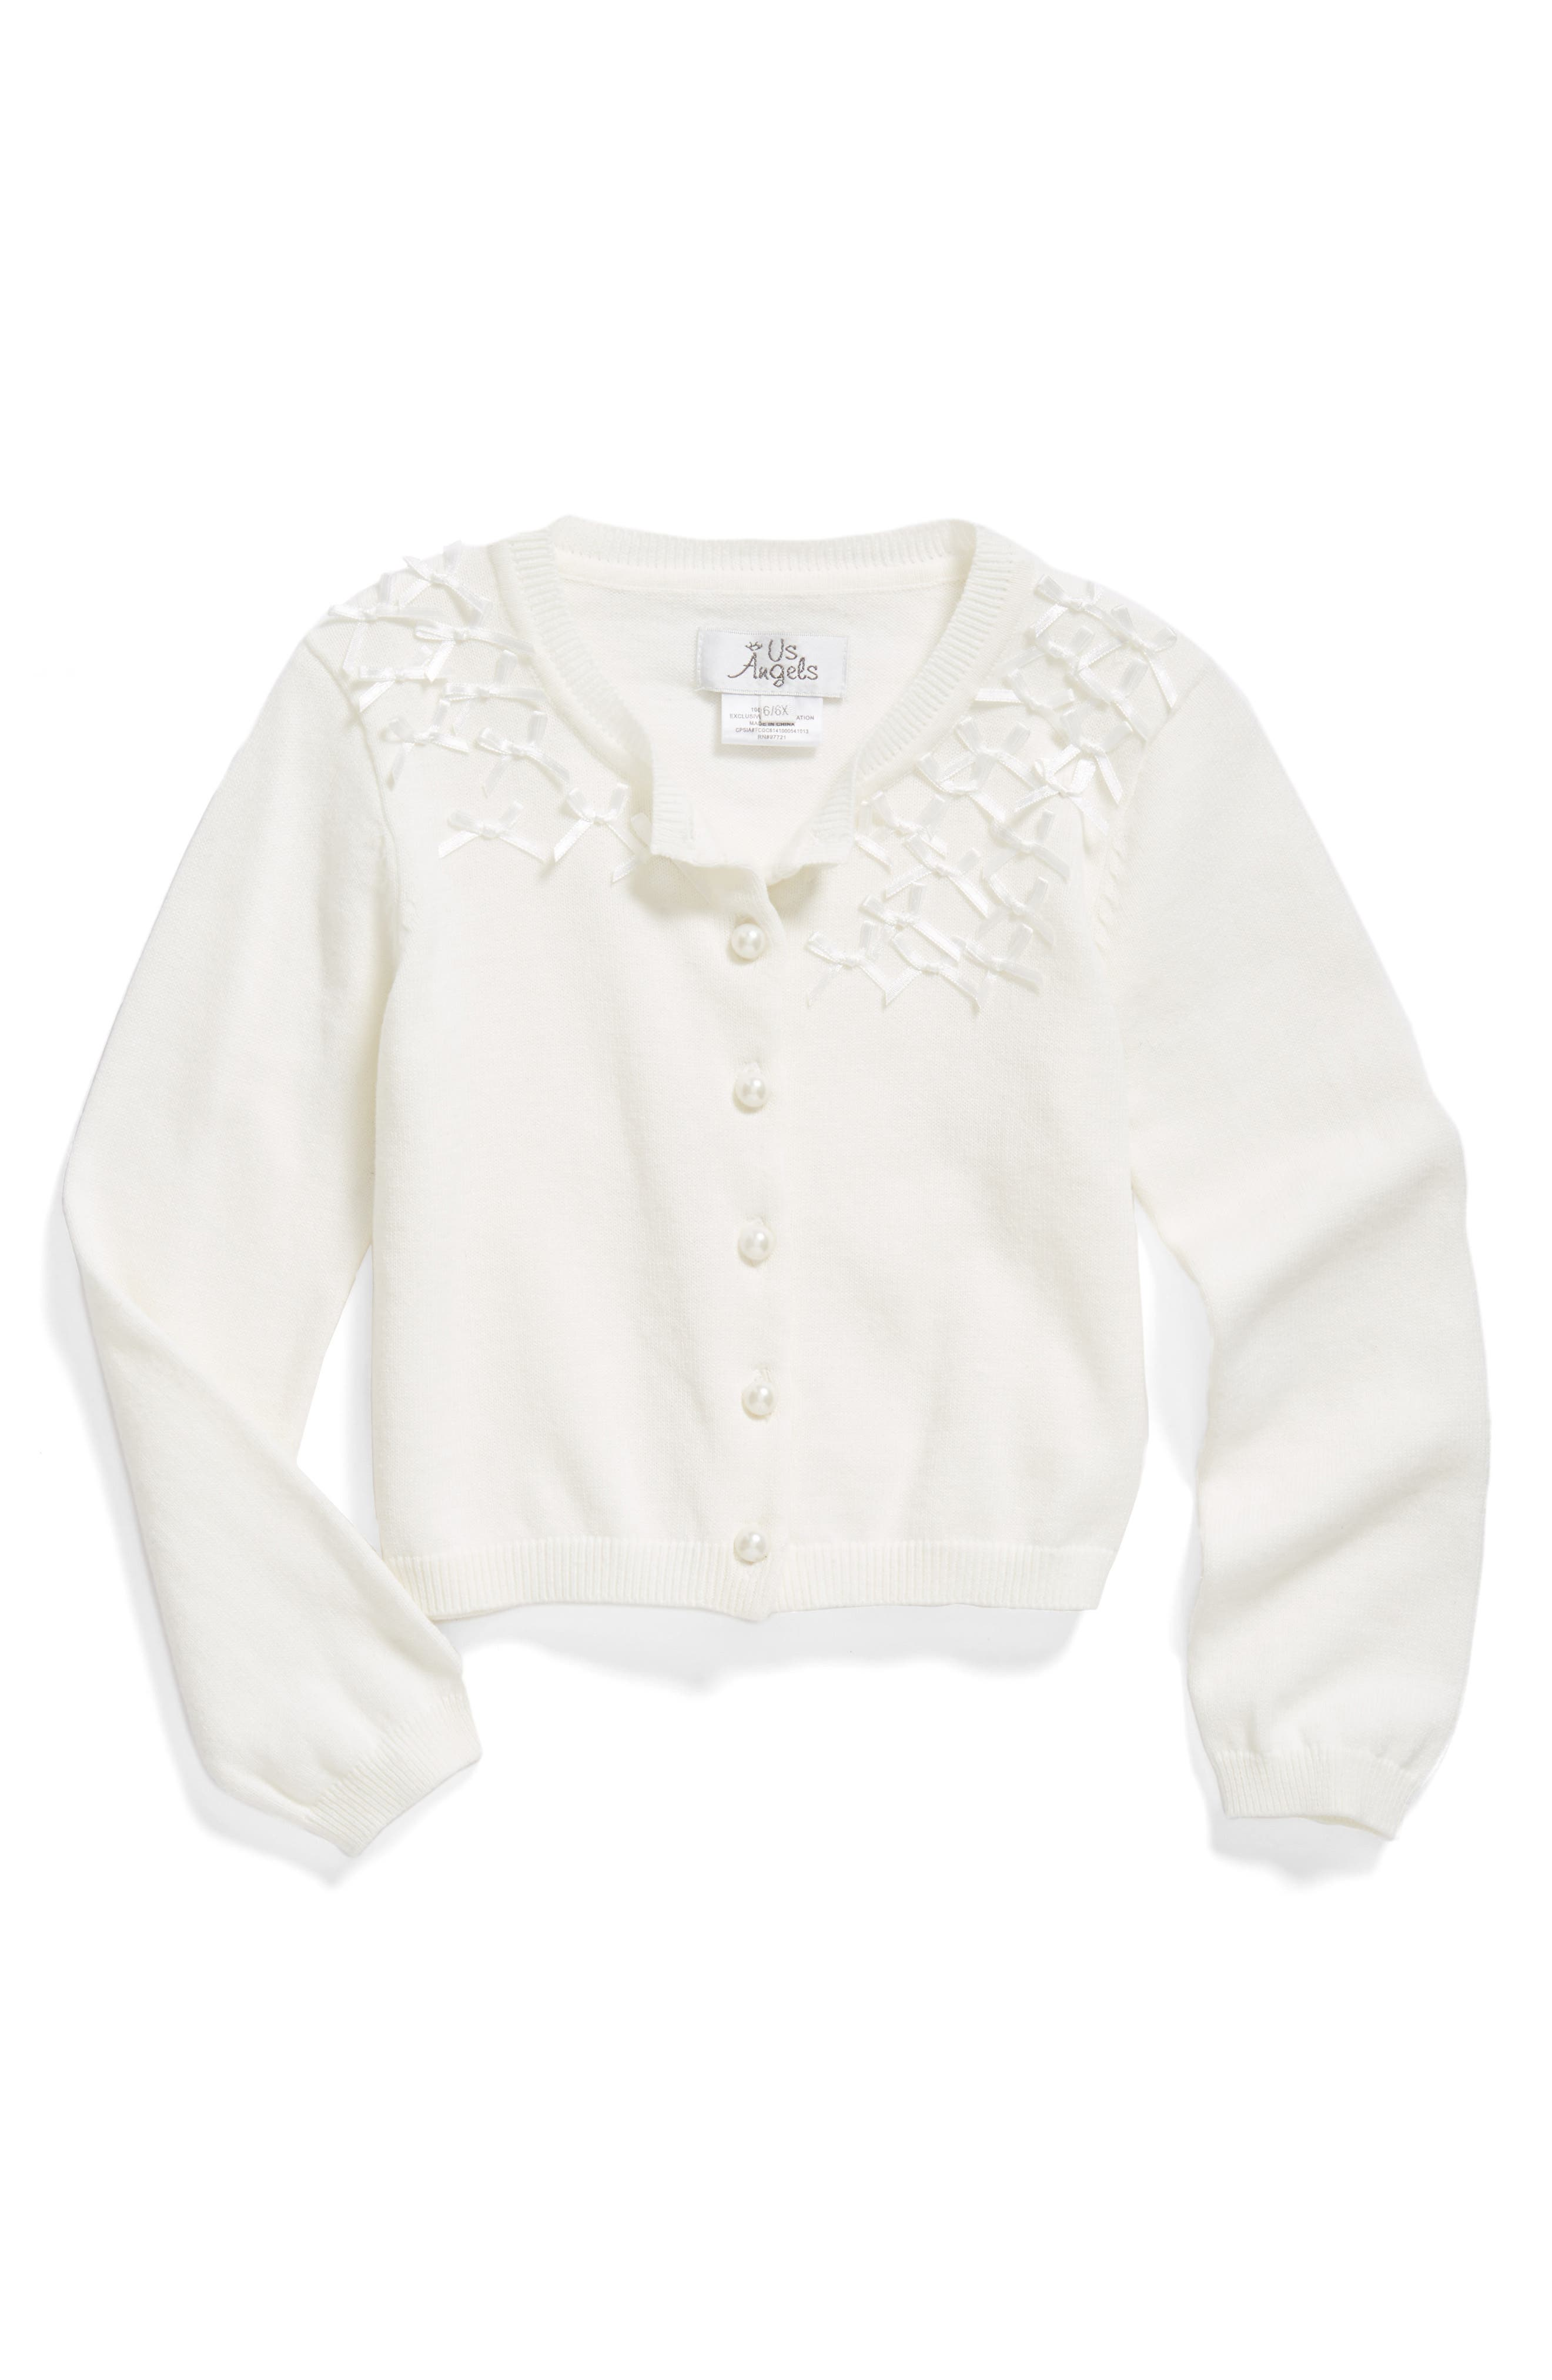 Communion Cardigan Sweater,                             Main thumbnail 1, color,                             900